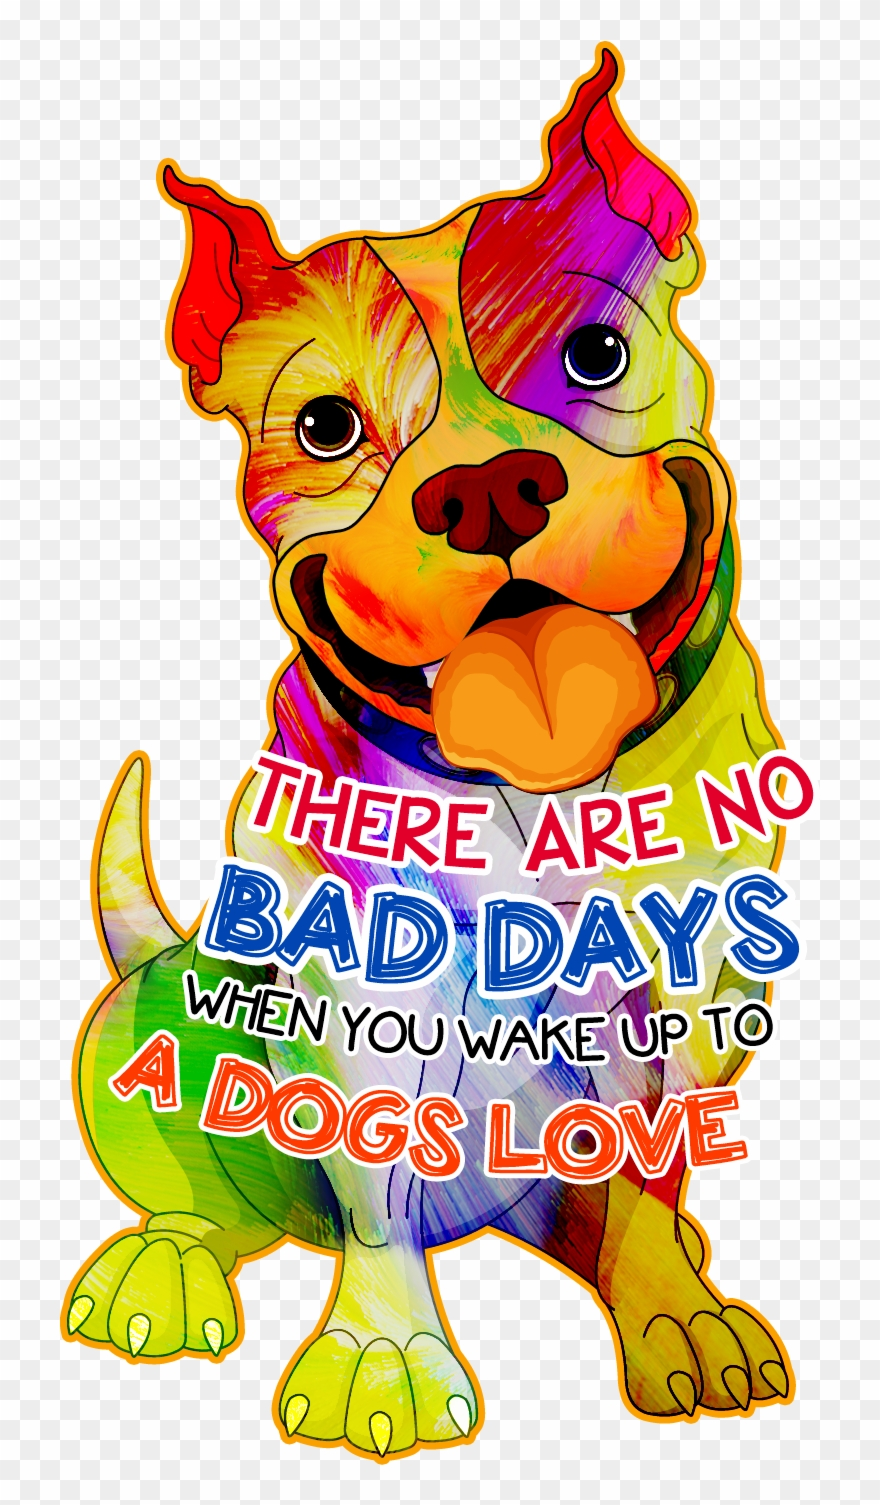 hight resolution of there are no bad days when you wake up to a dog s love dog lover